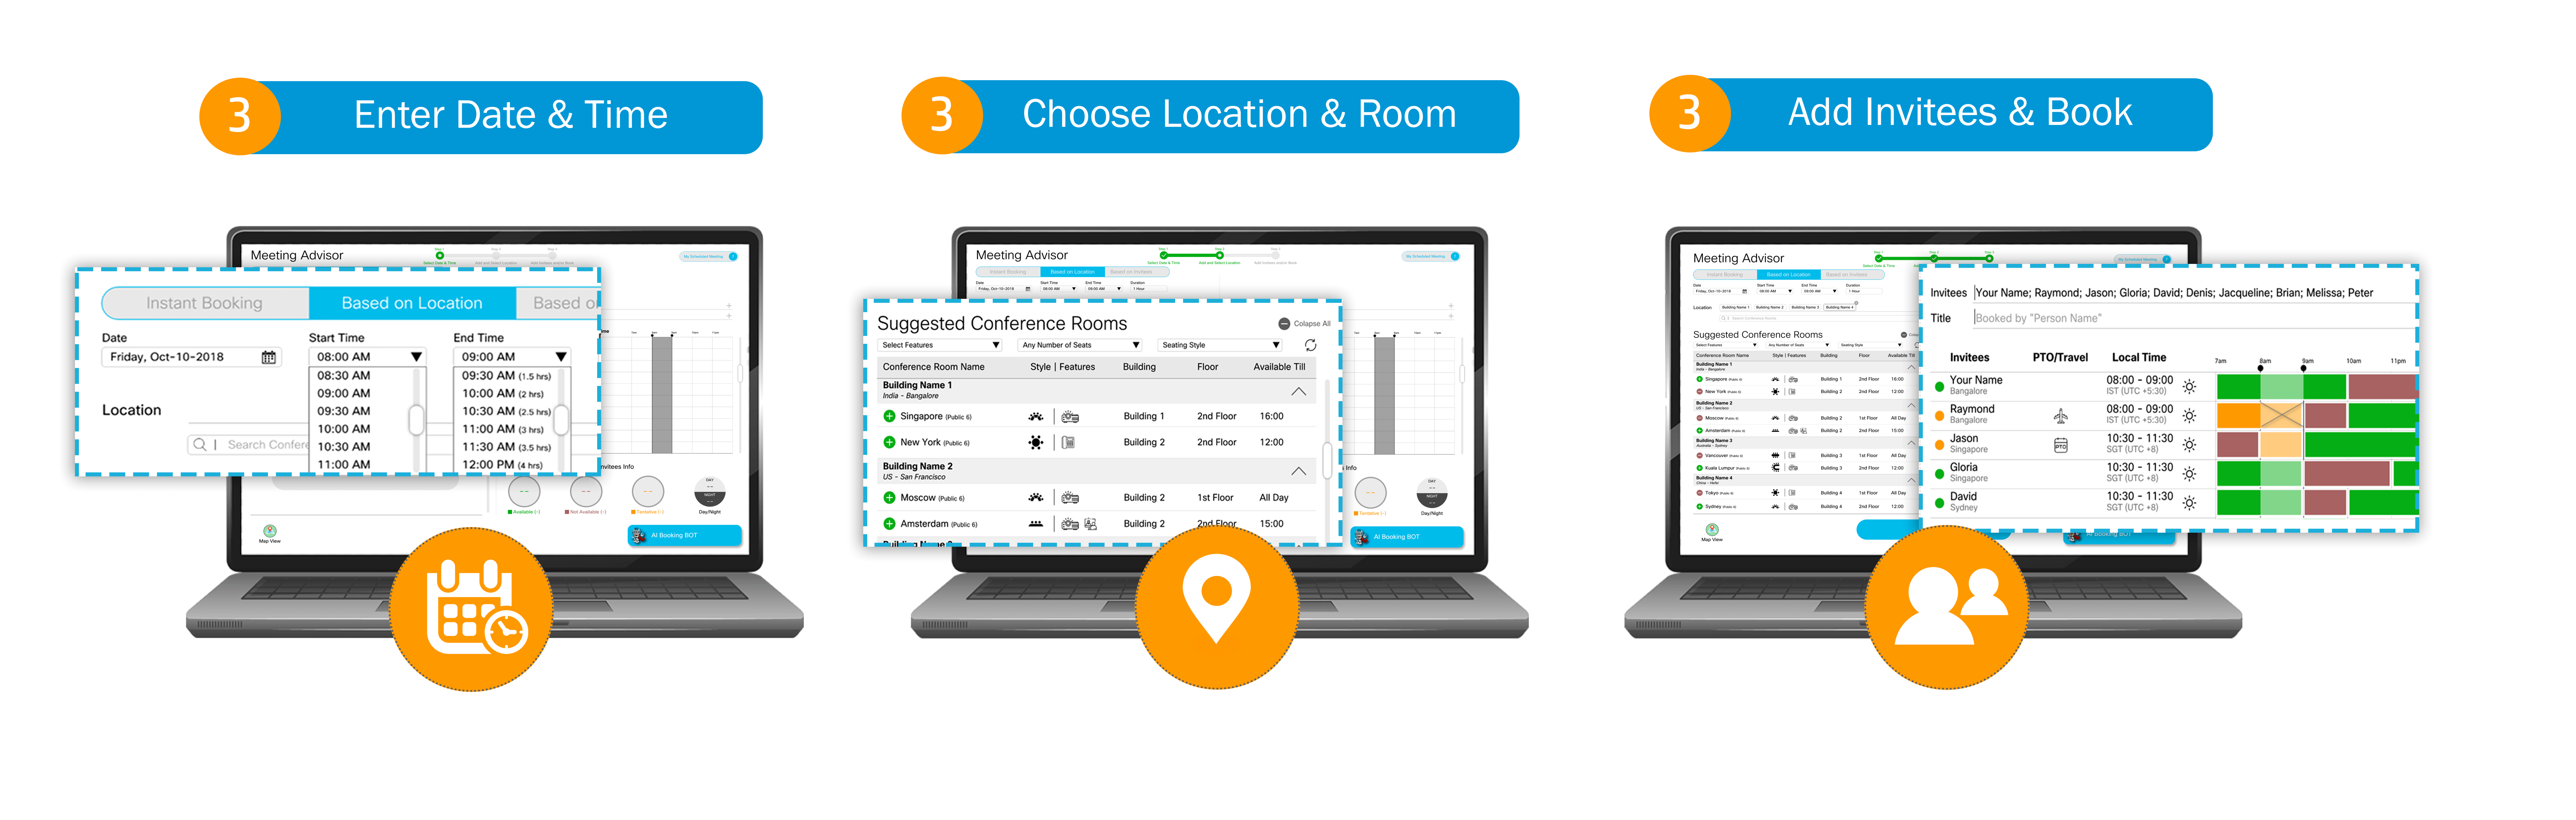 Scheduling Based On Location